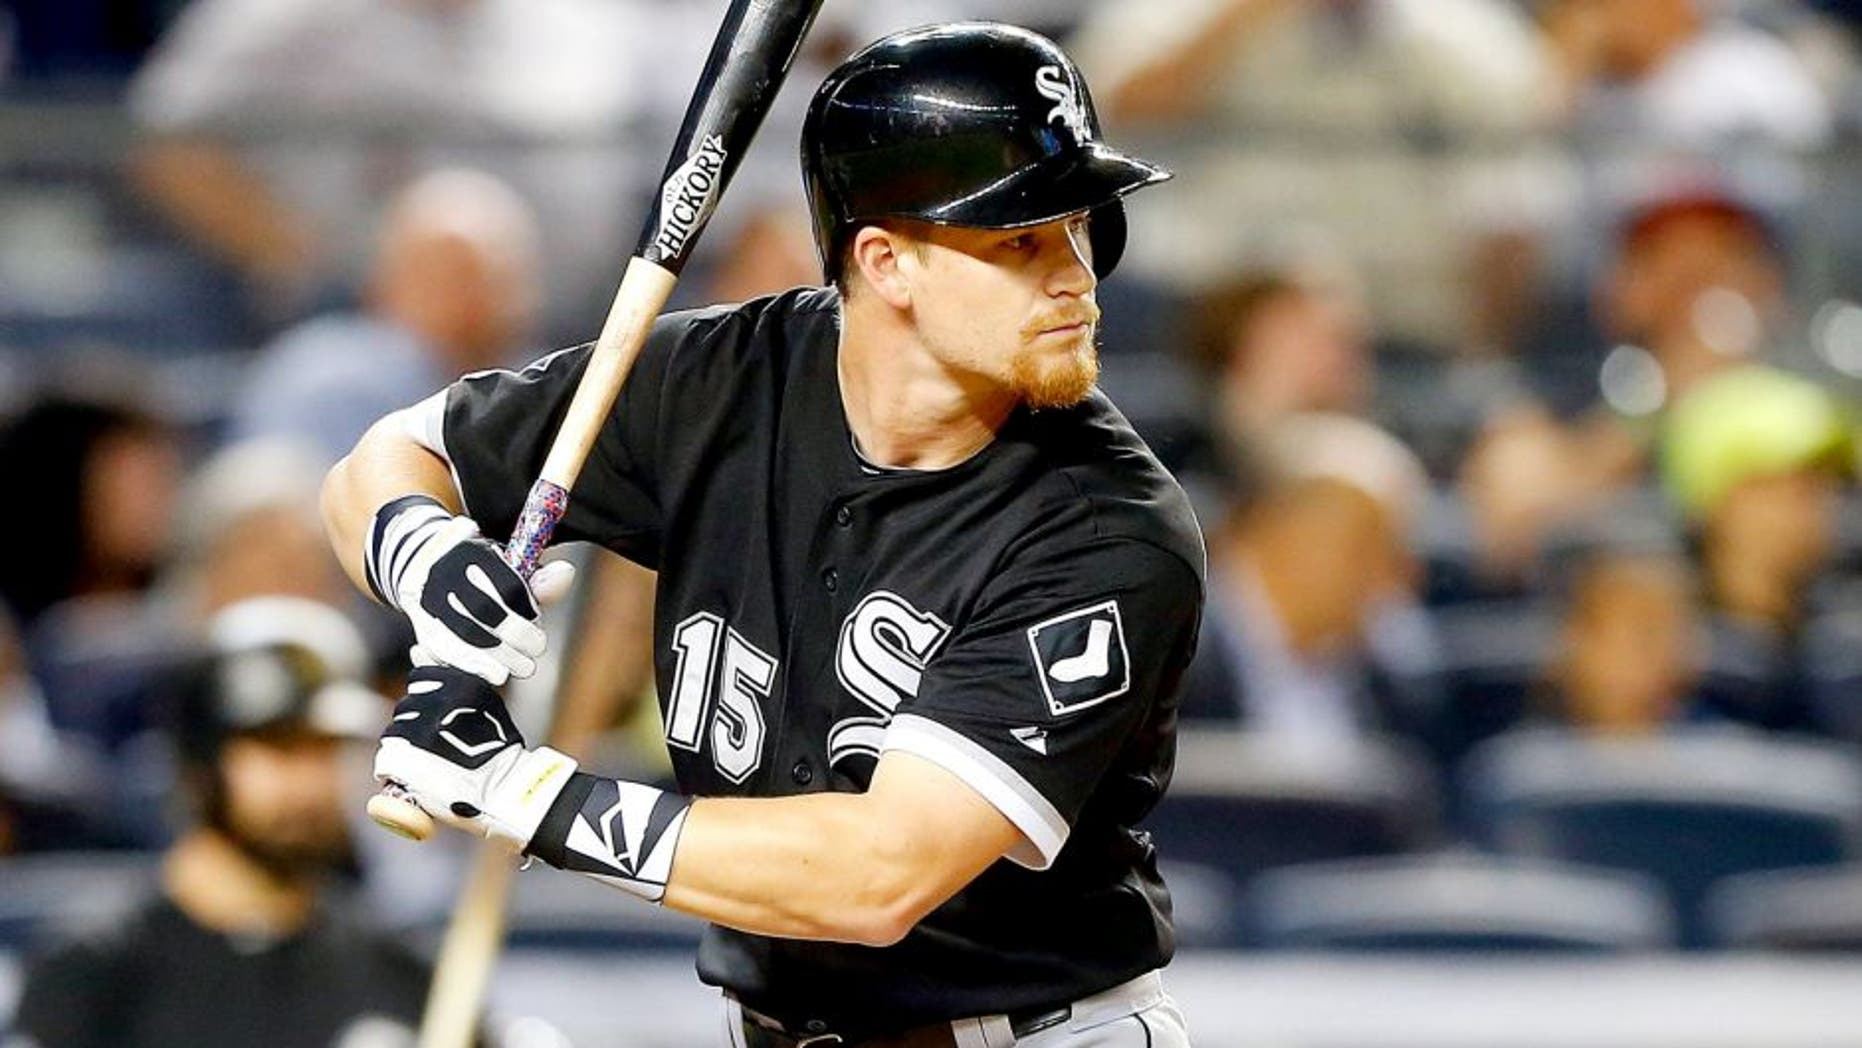 NEW YORK, NY - SEPTEMBER 25: Gordon Beckham #15 of the Chicago White Sox in action against the New York Yankees at Yankee Stadium on September 25, 2015 in the Bronx borough of New York City. The White Sox defeated the Yankees 5-2. (Photo by Jim McIsaac/Getty Images)